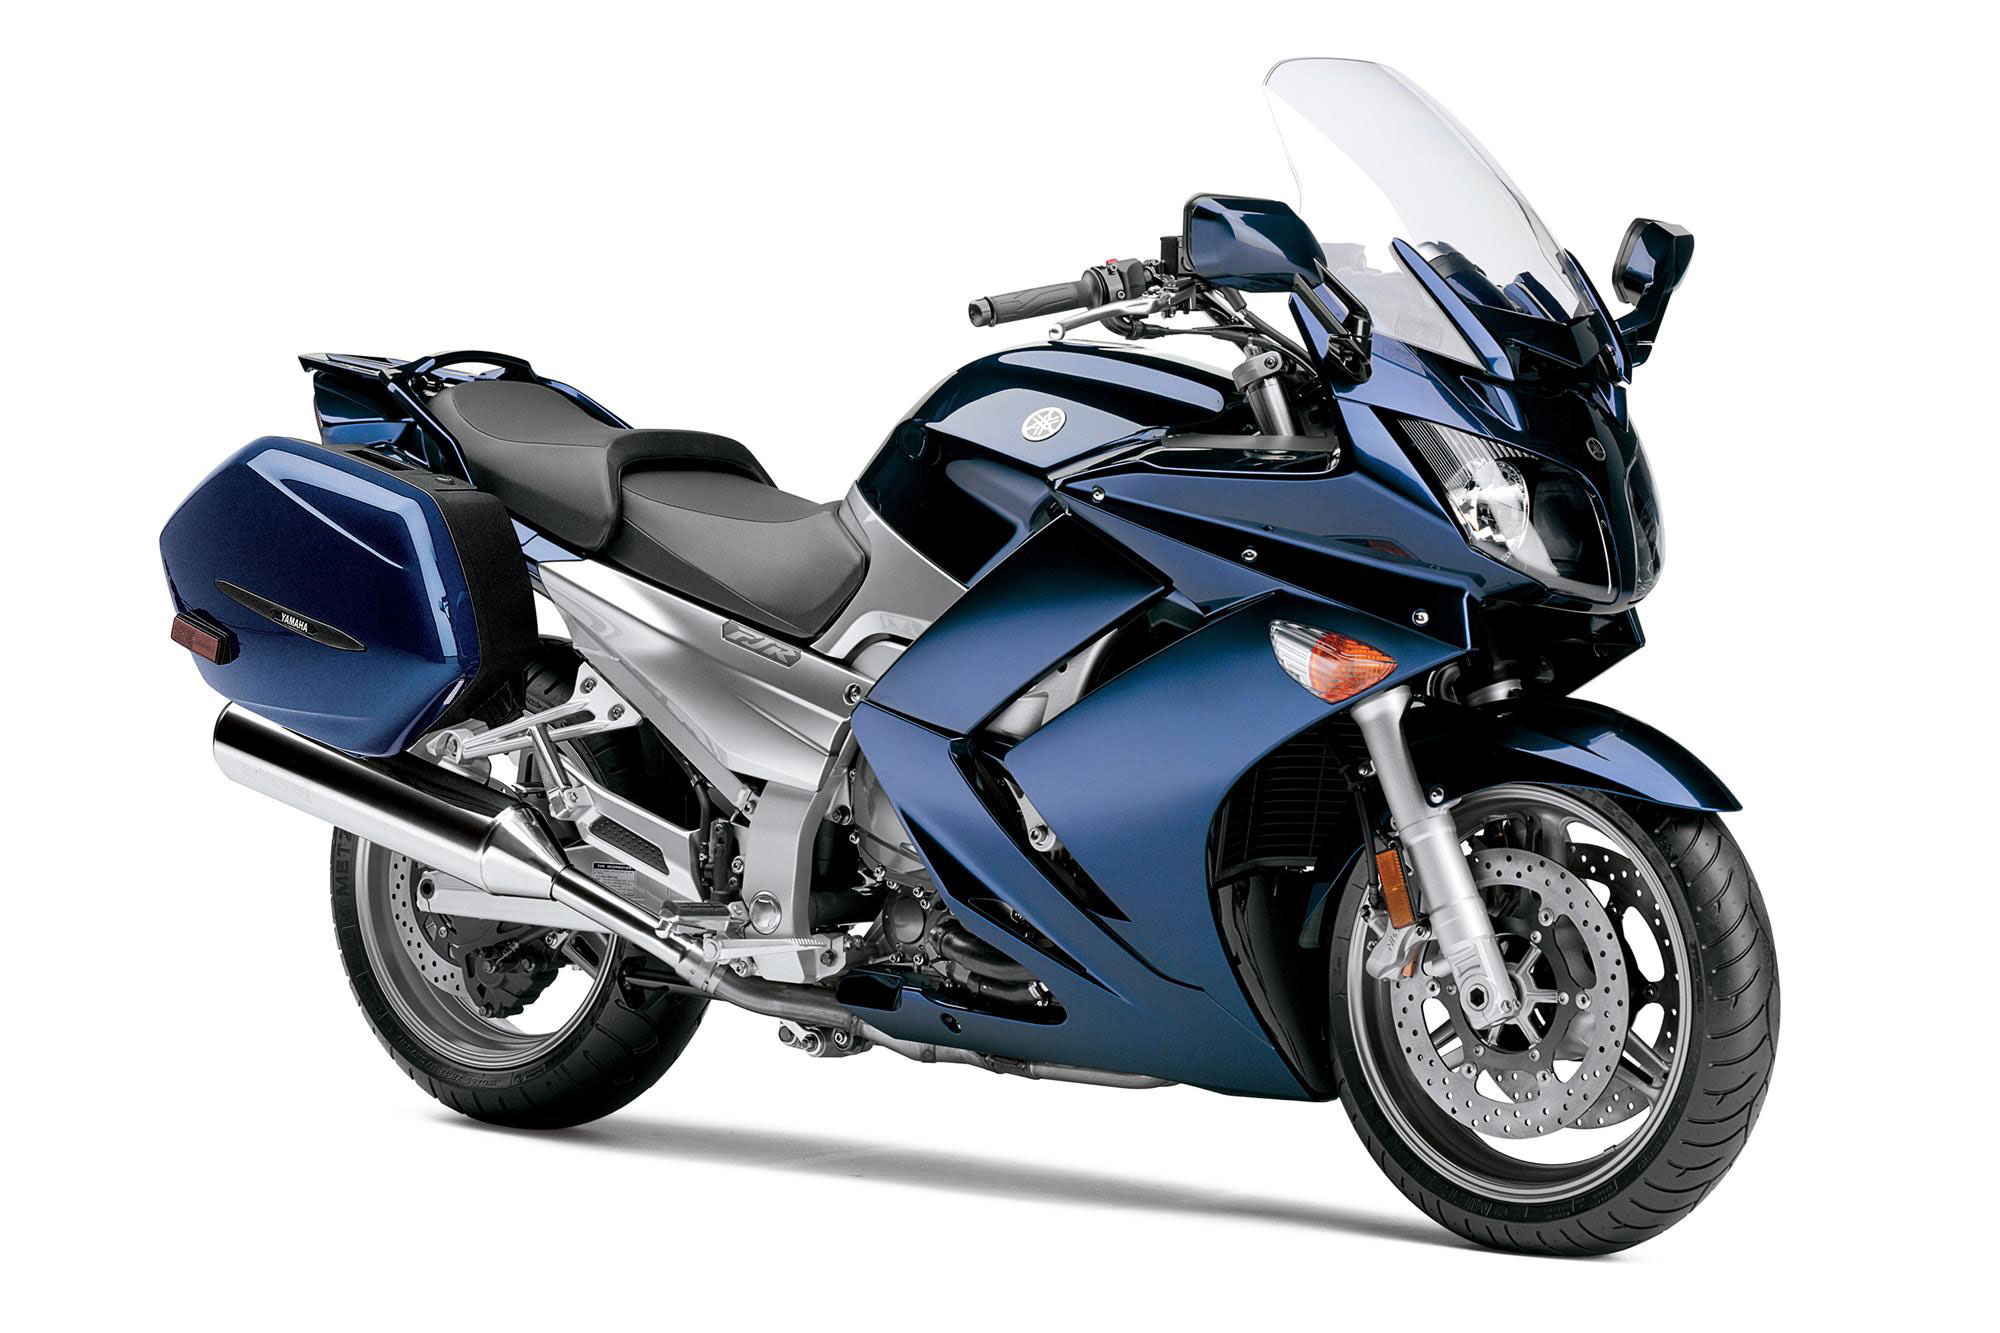 yamaha fjr1300 specs 2011 2012 autoevolution. Black Bedroom Furniture Sets. Home Design Ideas